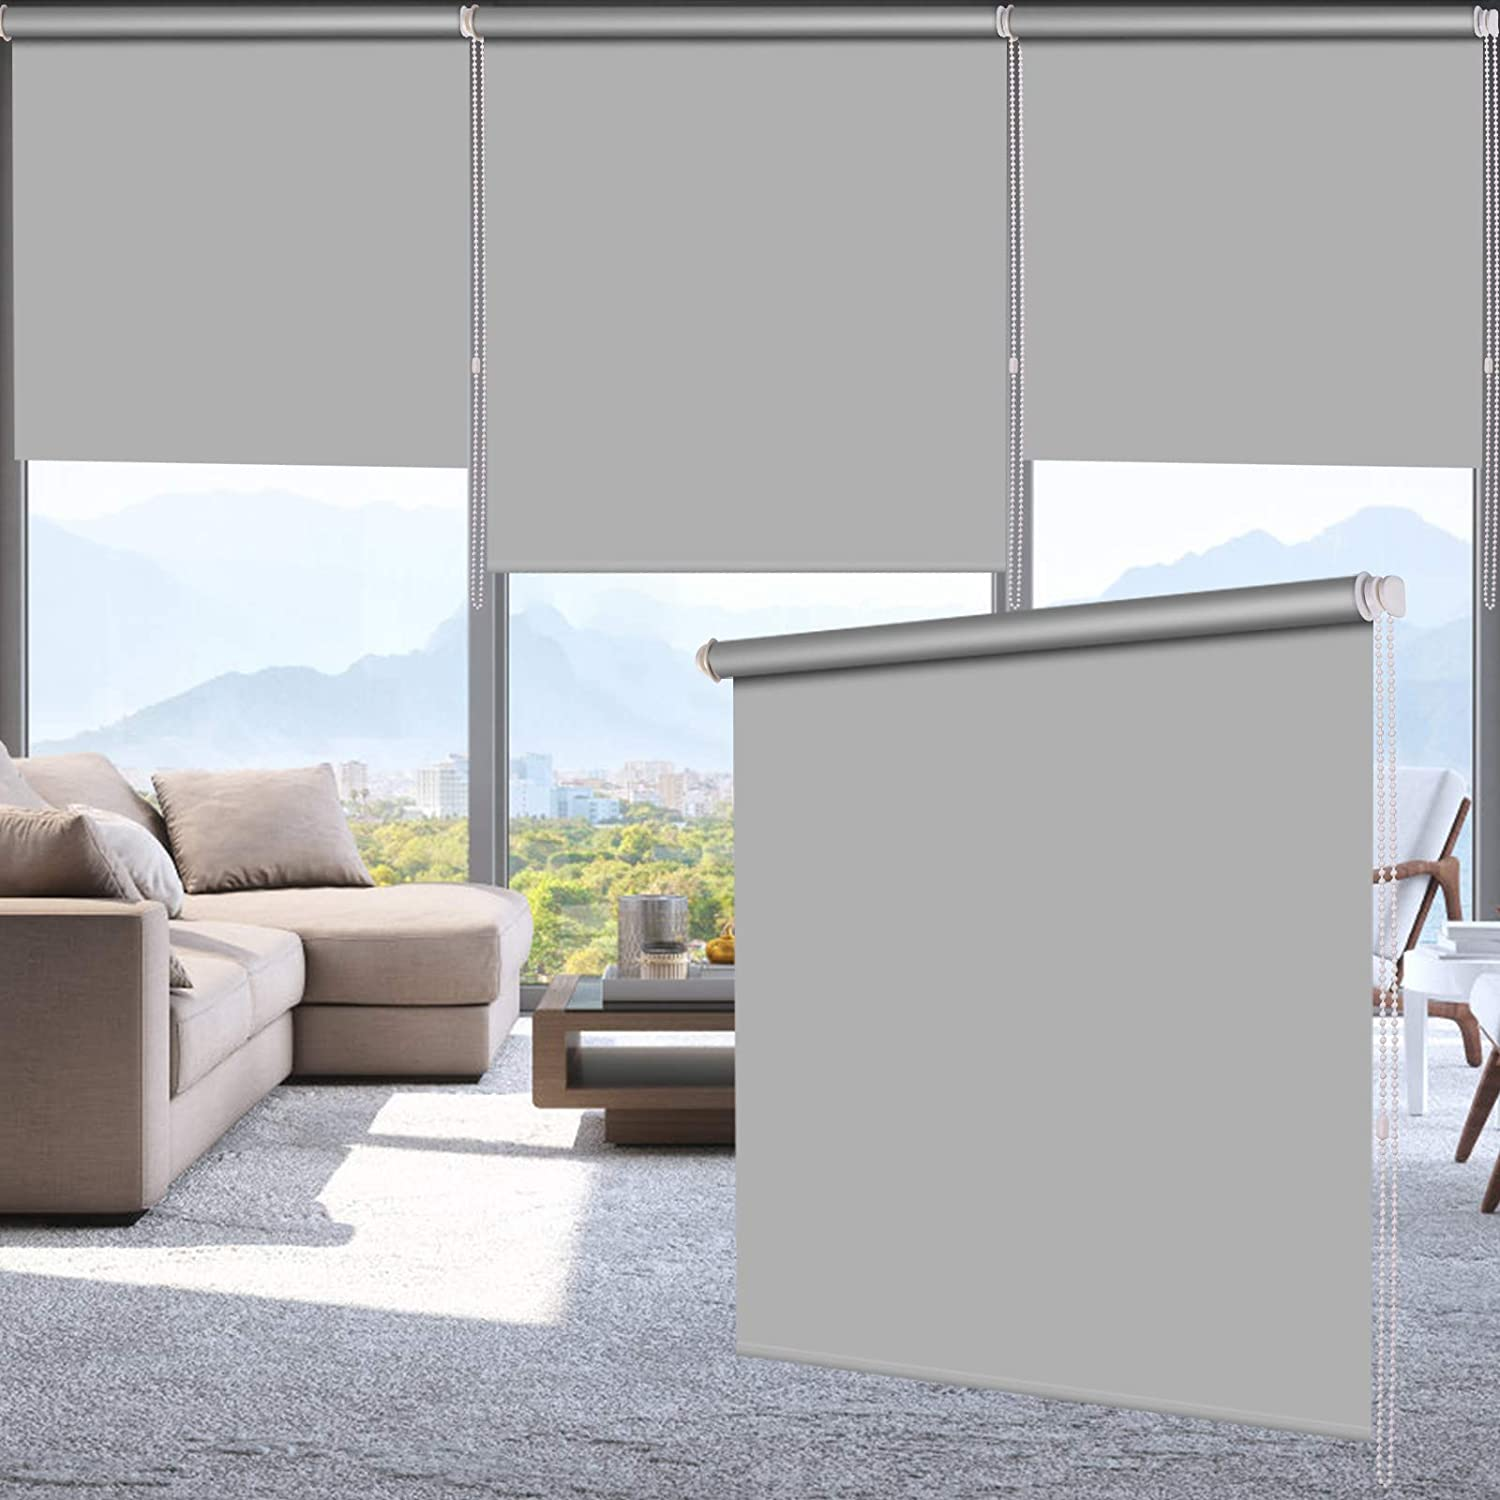 LUCKUP 12 Blackout Waterproof Fabric Window Roller Shades Blind, Thermal  Insulated,UV Protection,for Bedrooms,Living Room,Bathroom,The Office, Easy  ...